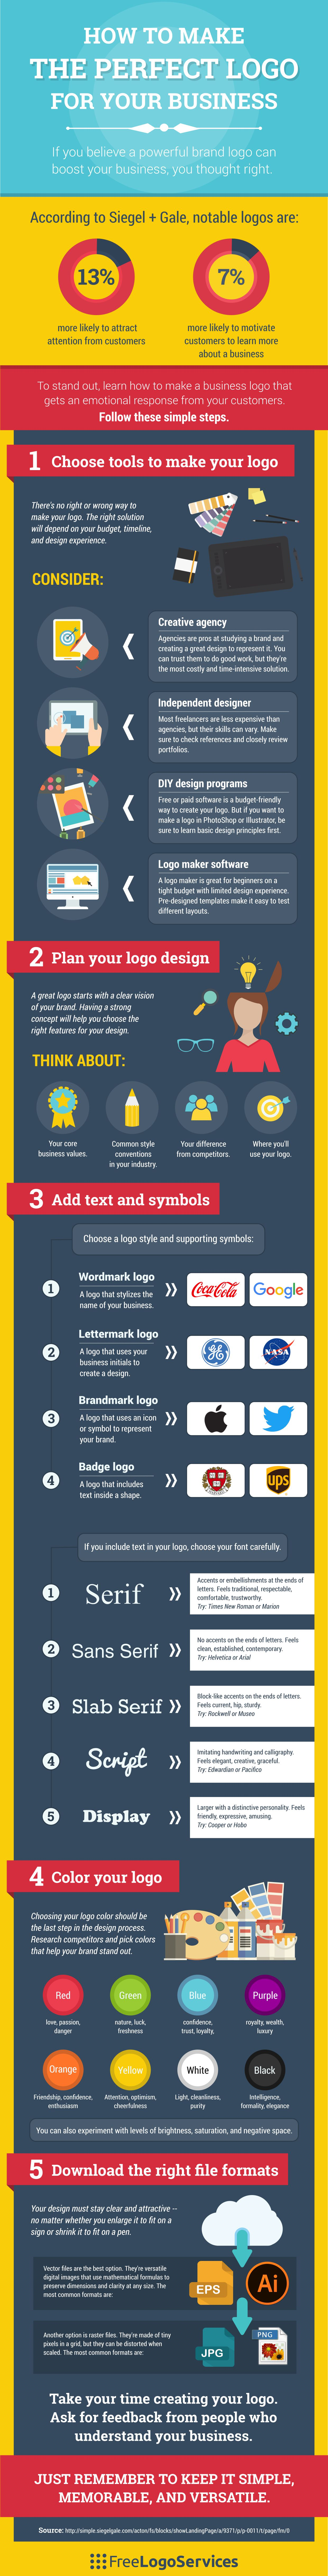 How to Make the Perfect Logo for Your Business [Infographic]